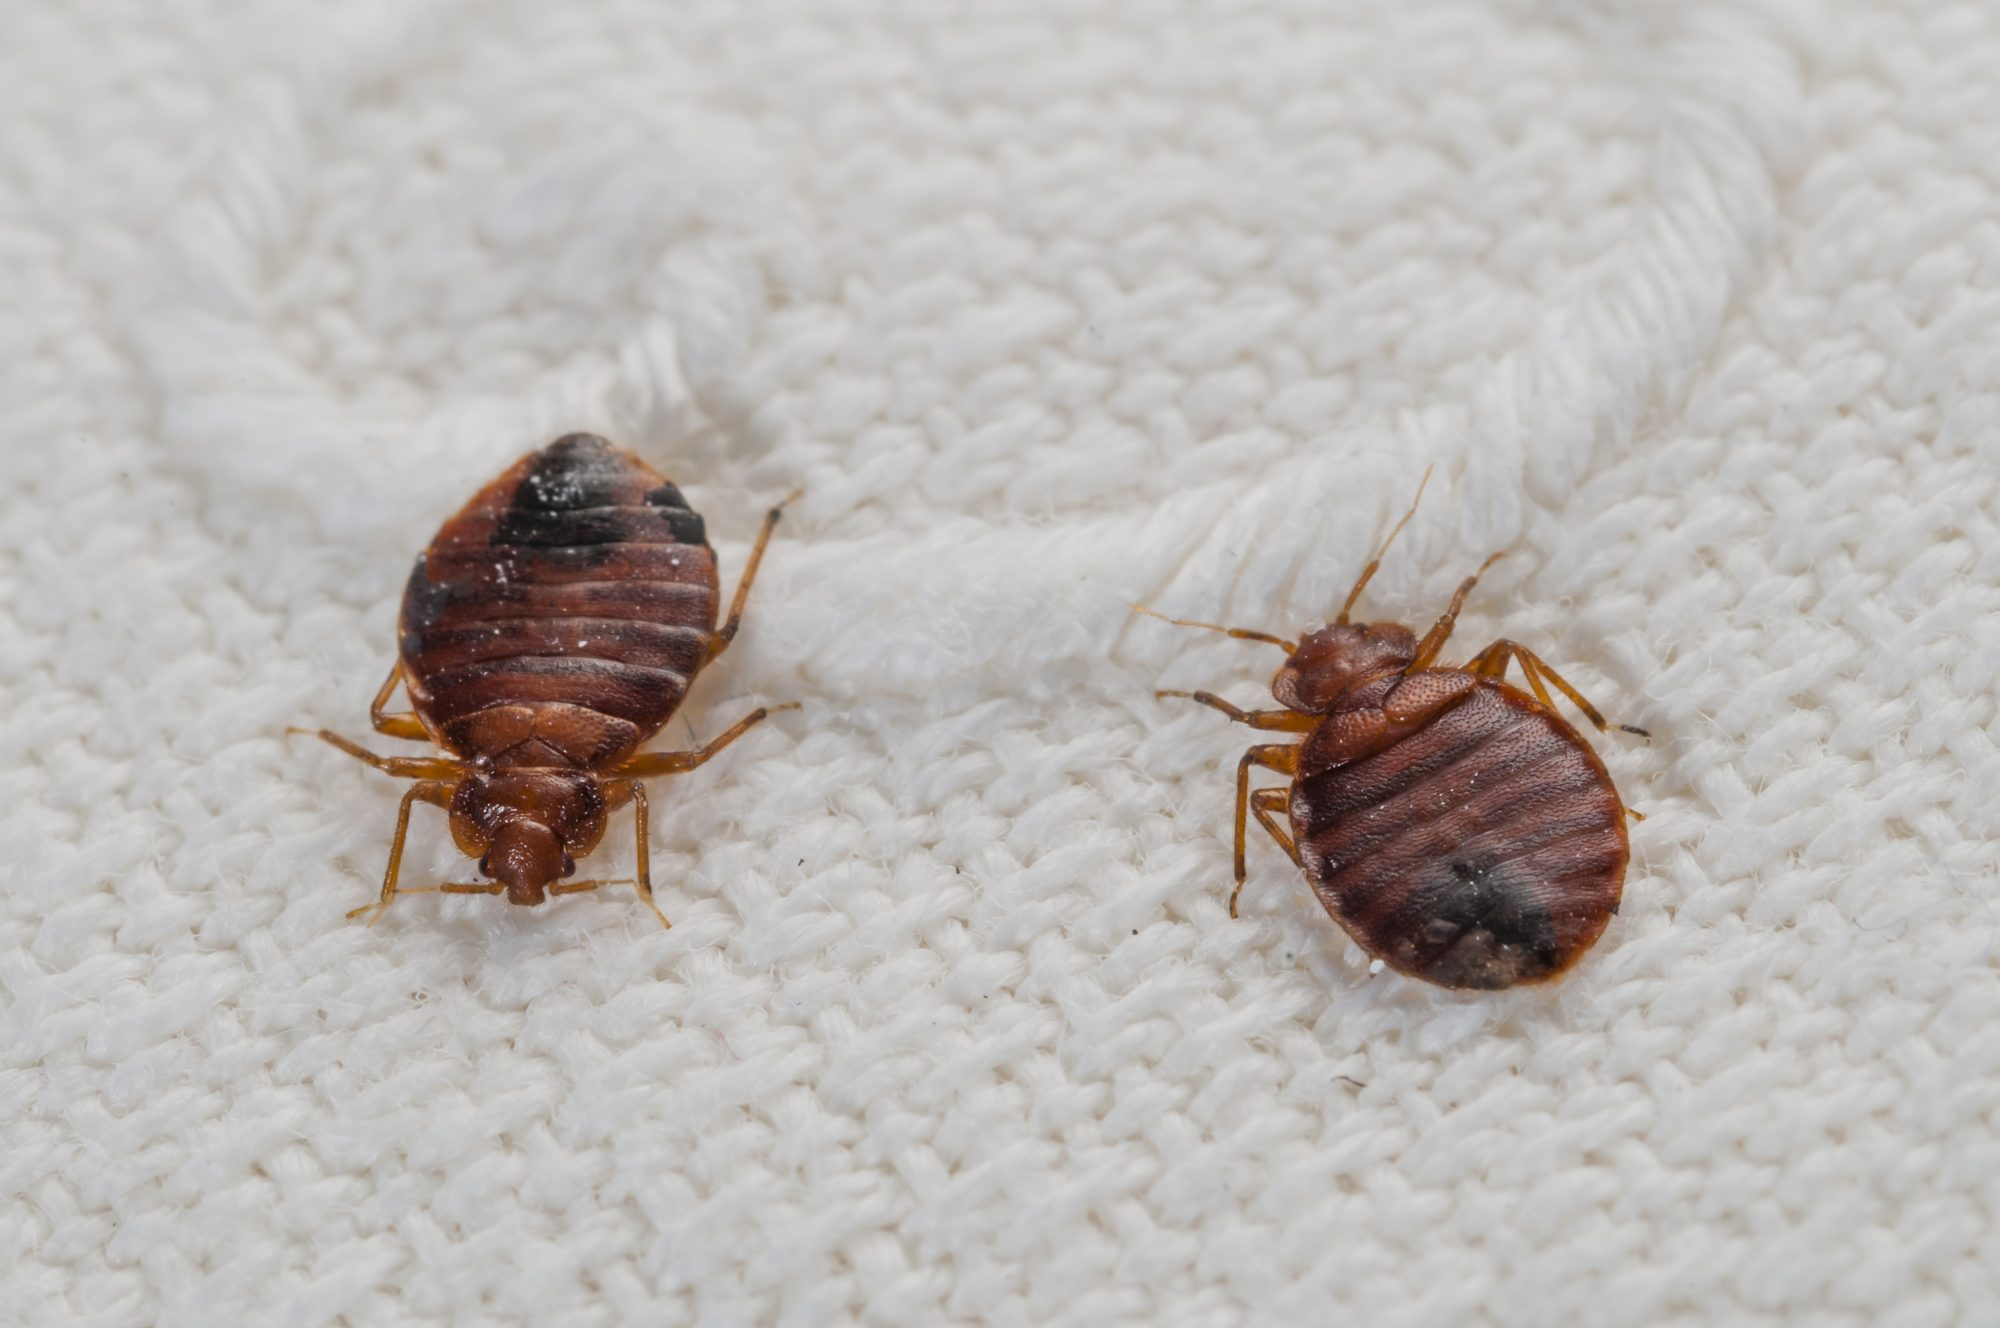 Everything You Need to Know If You Wake Up With Bed Bug Bites